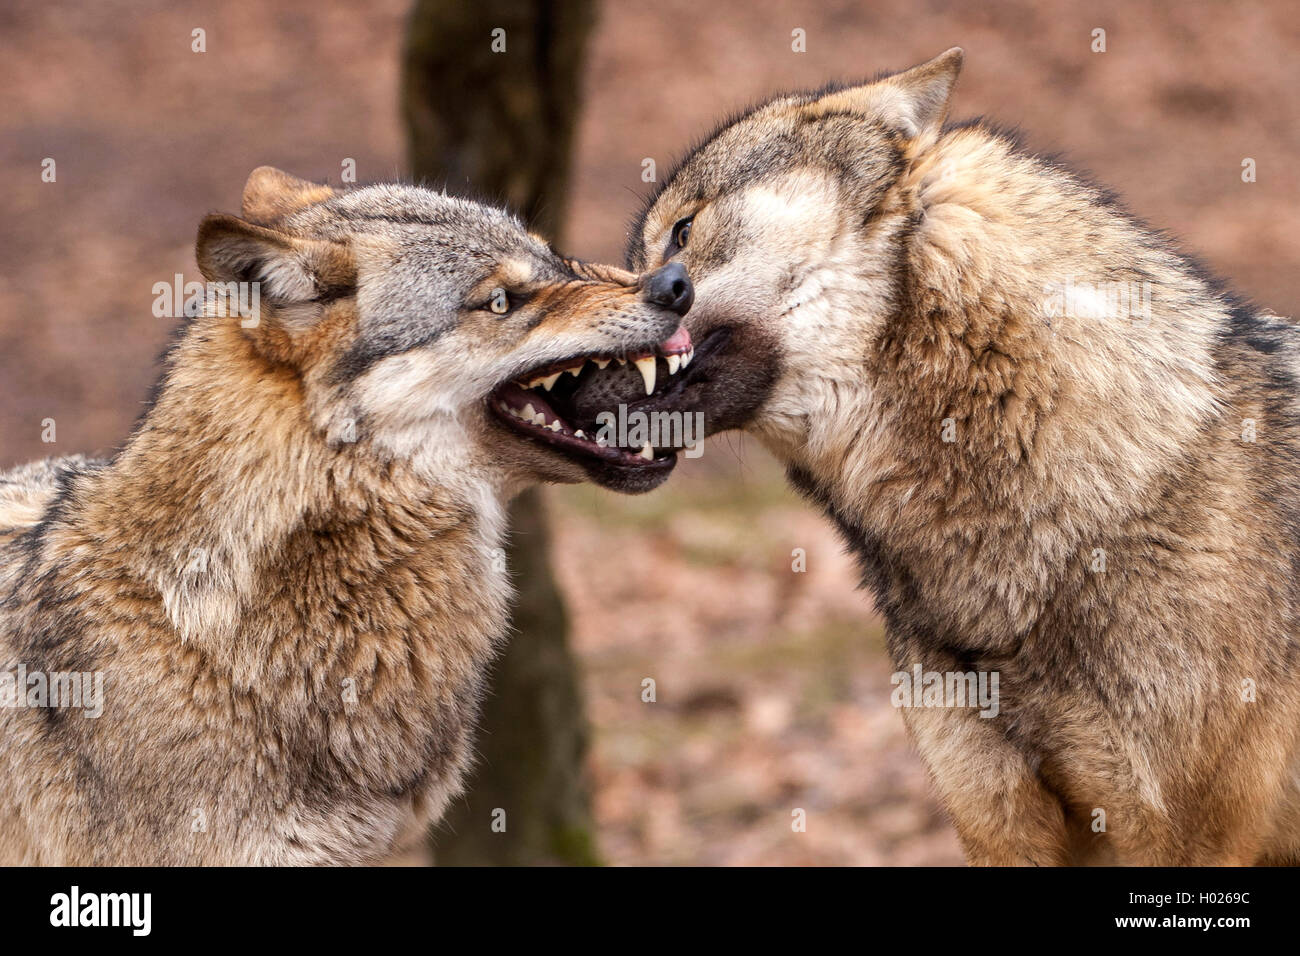 European gray wolf (Canis lupus lupus), bite inhibition of two wolves, Germany, Lower Saxony Stock Photo